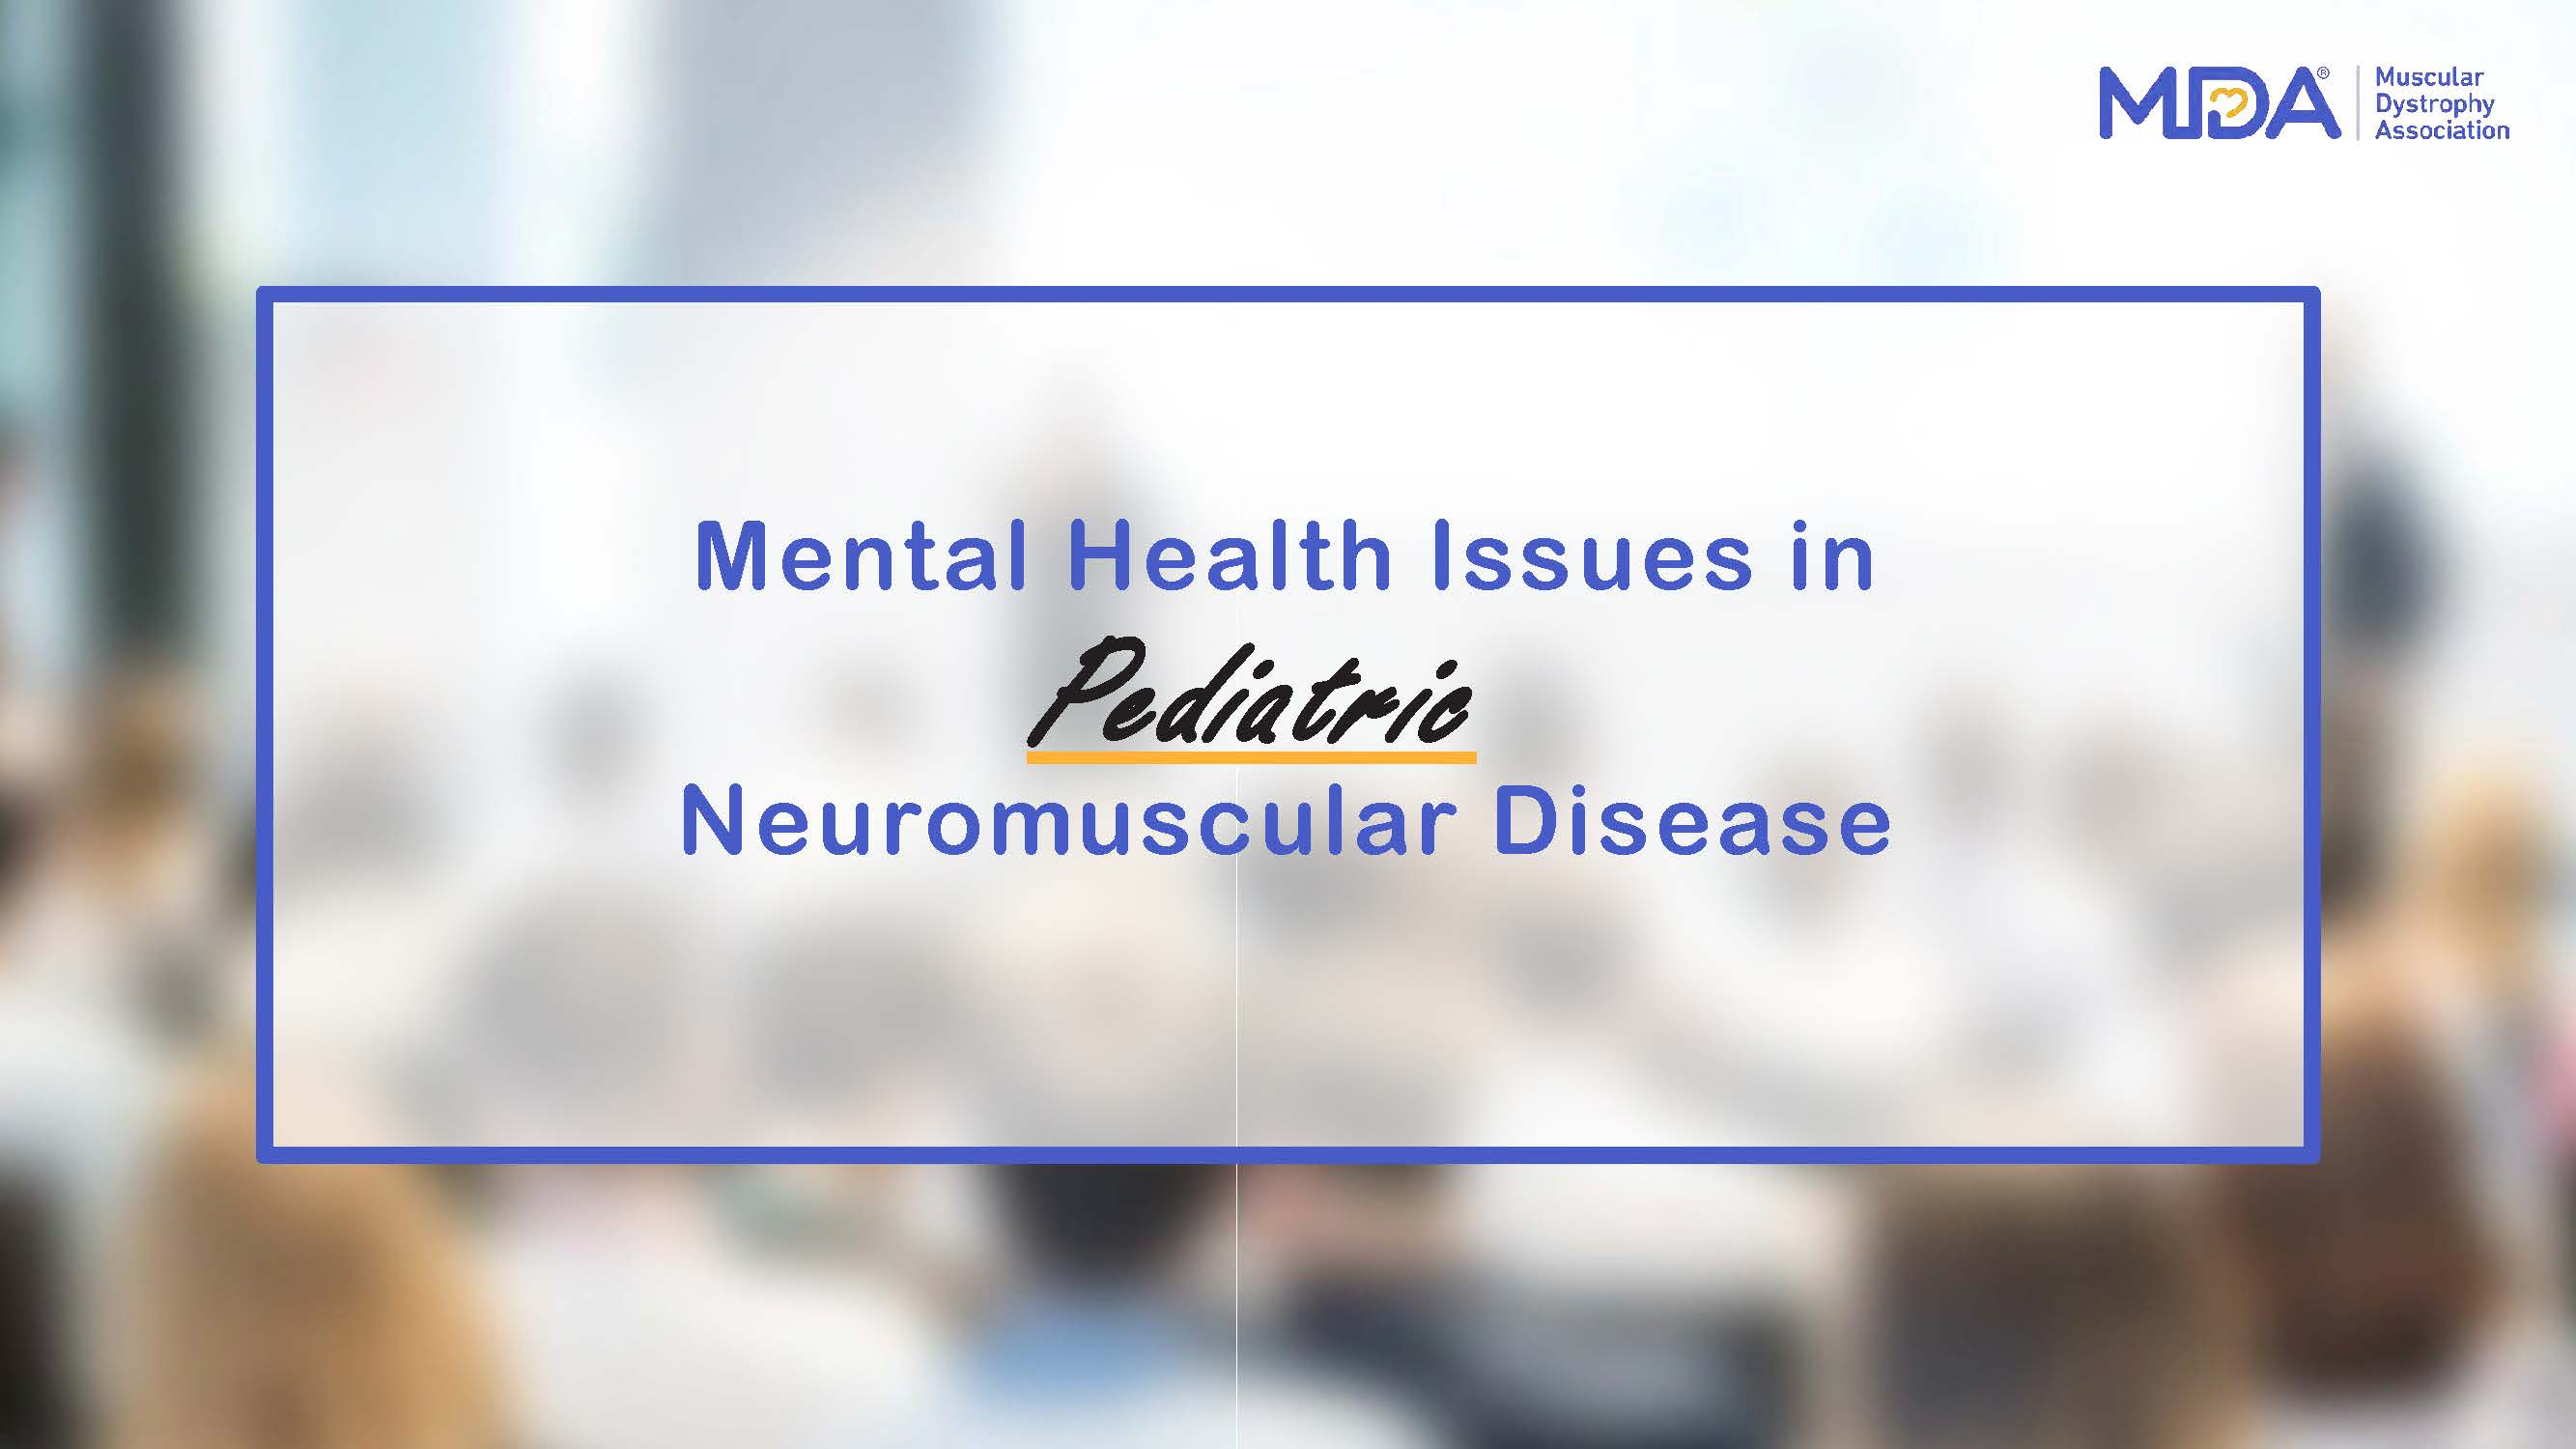 Mental Health Issues in Pediatric Neuromuscular Disease